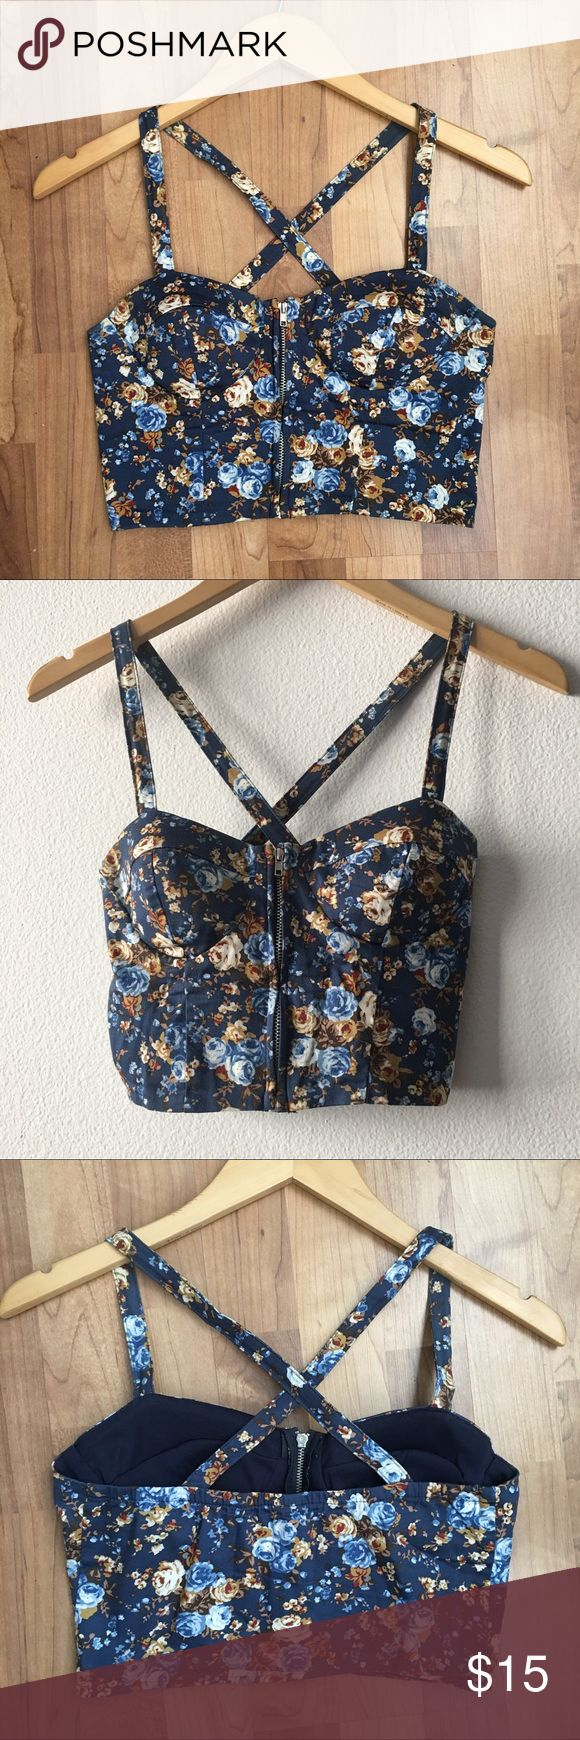 Floral Zip-Up Bustier Top Blue floral crop bustier top with zip up closure and lined cups from Nasty Gal Nasty Gal Tops Crop Tops